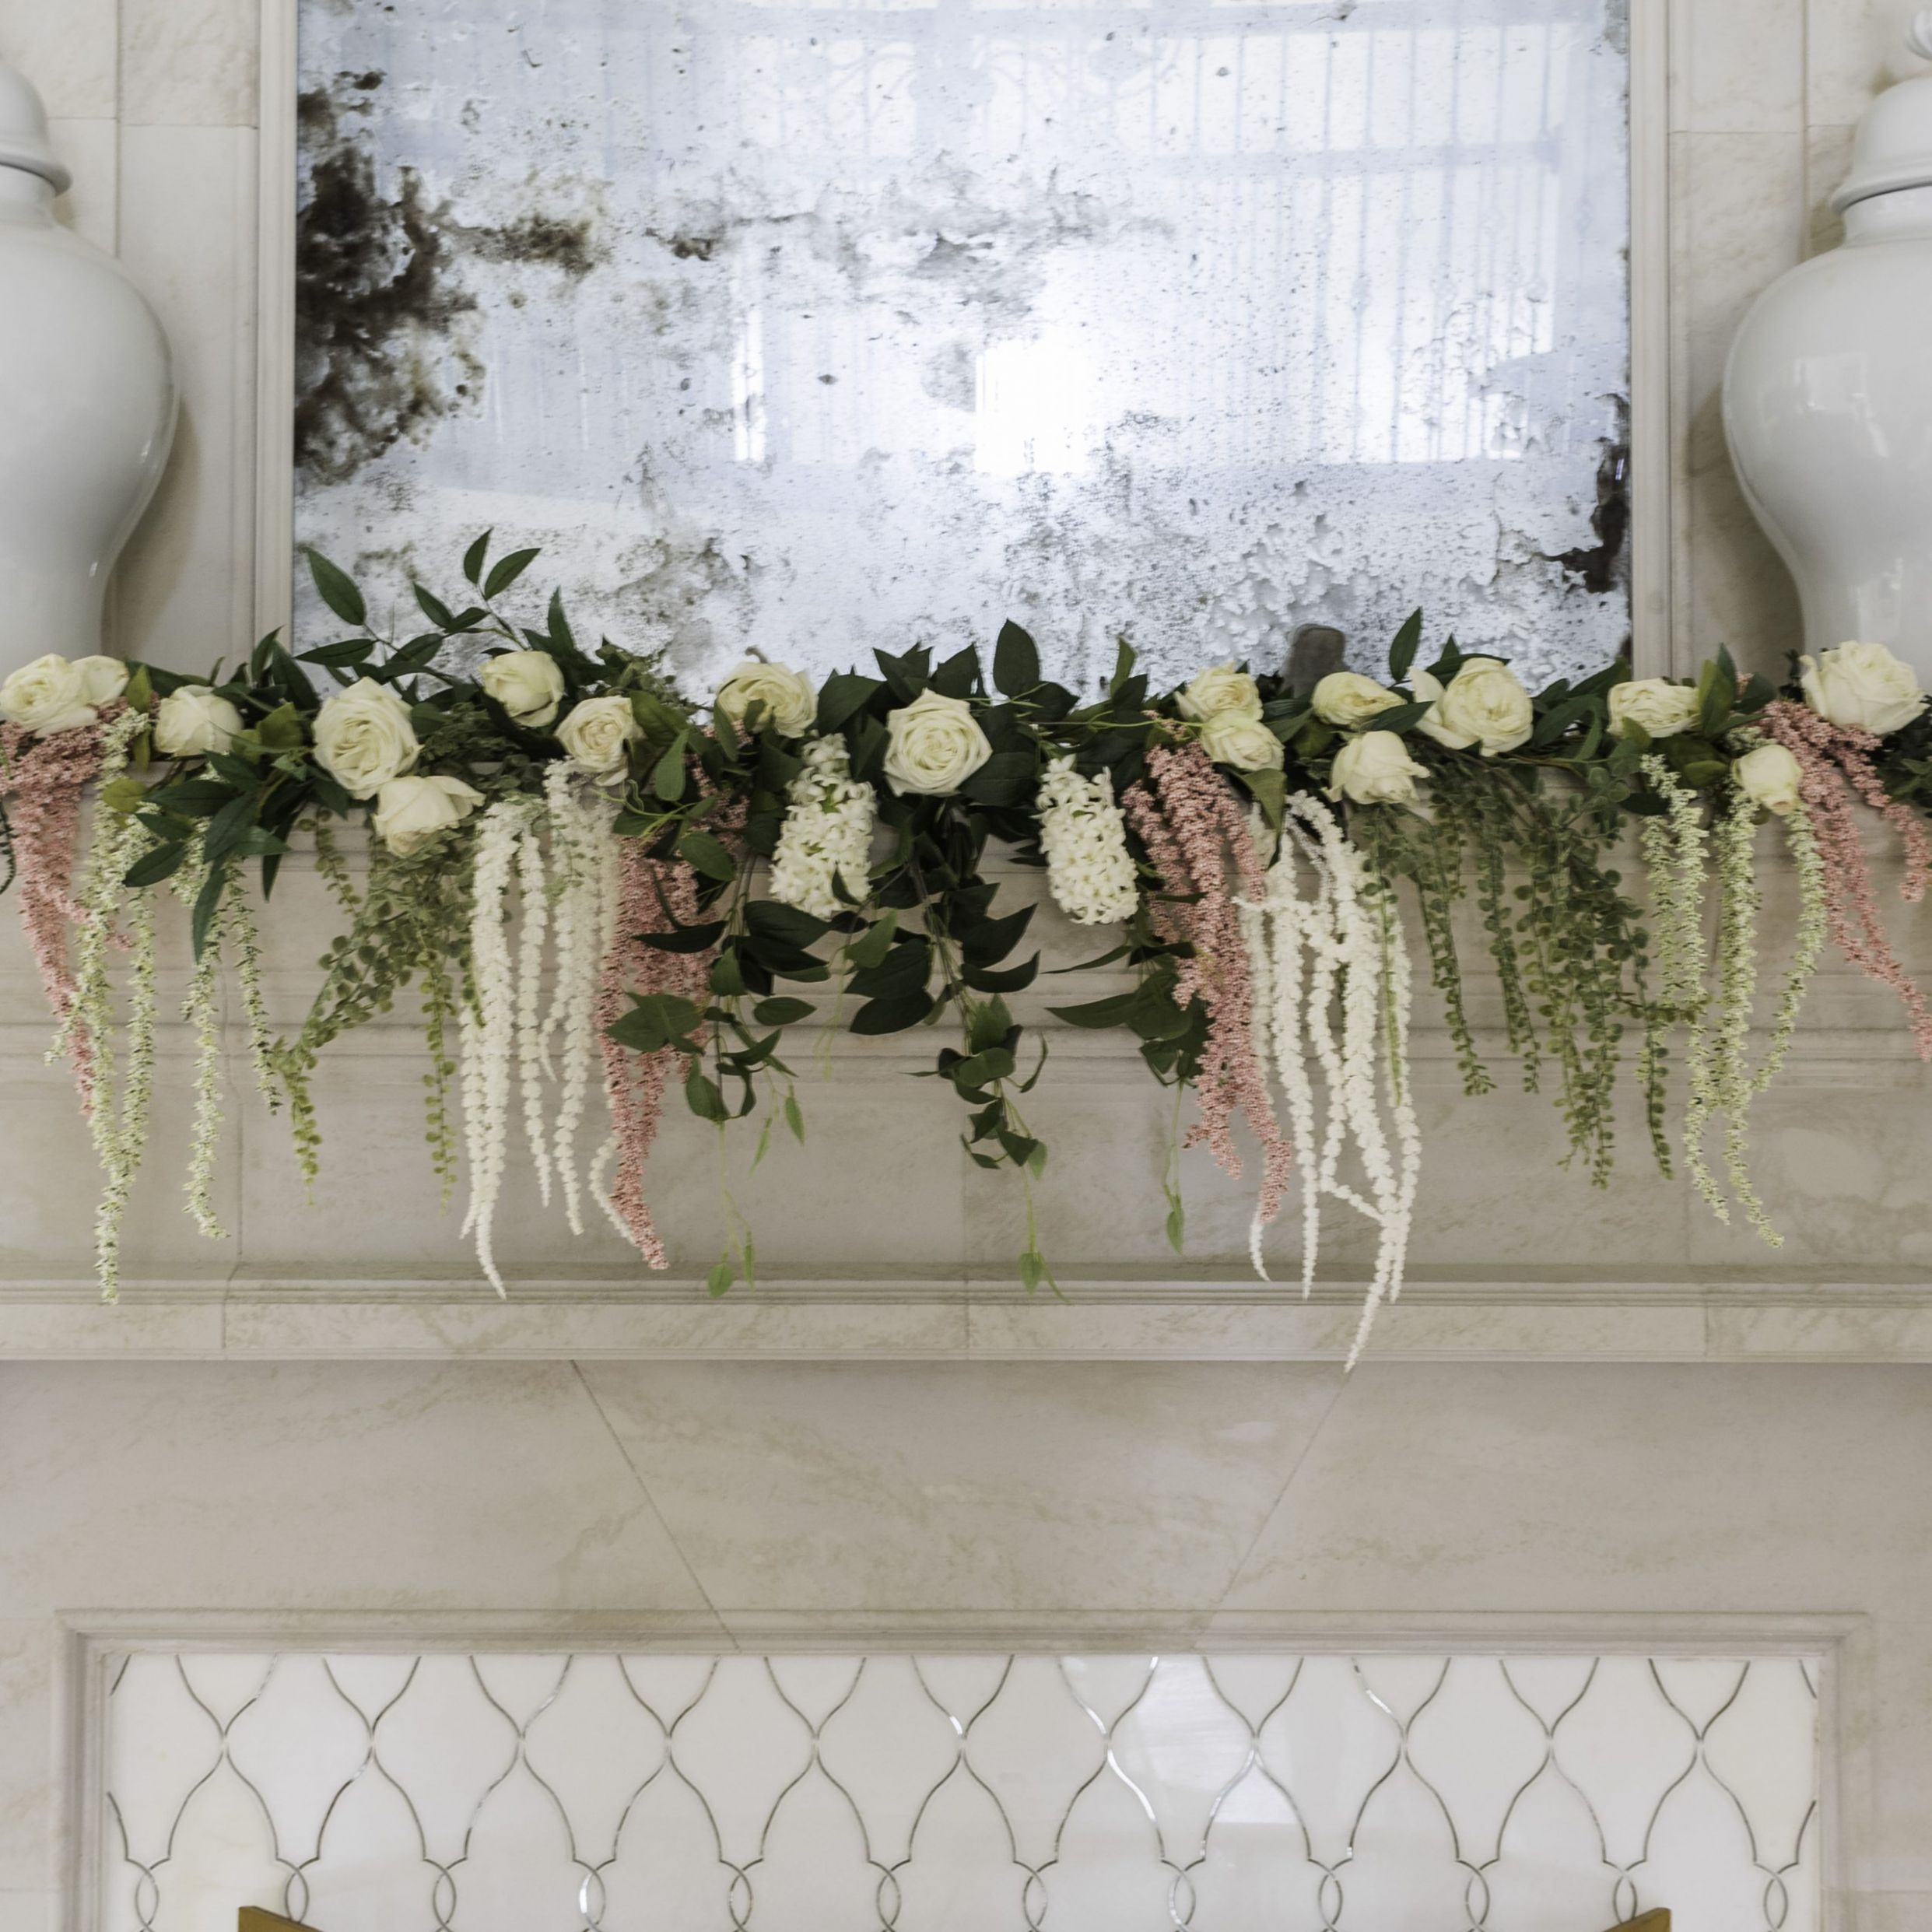 Gorgeous Spring Mantel Ideas | Home Design & Lifestyle | Maune Legacy